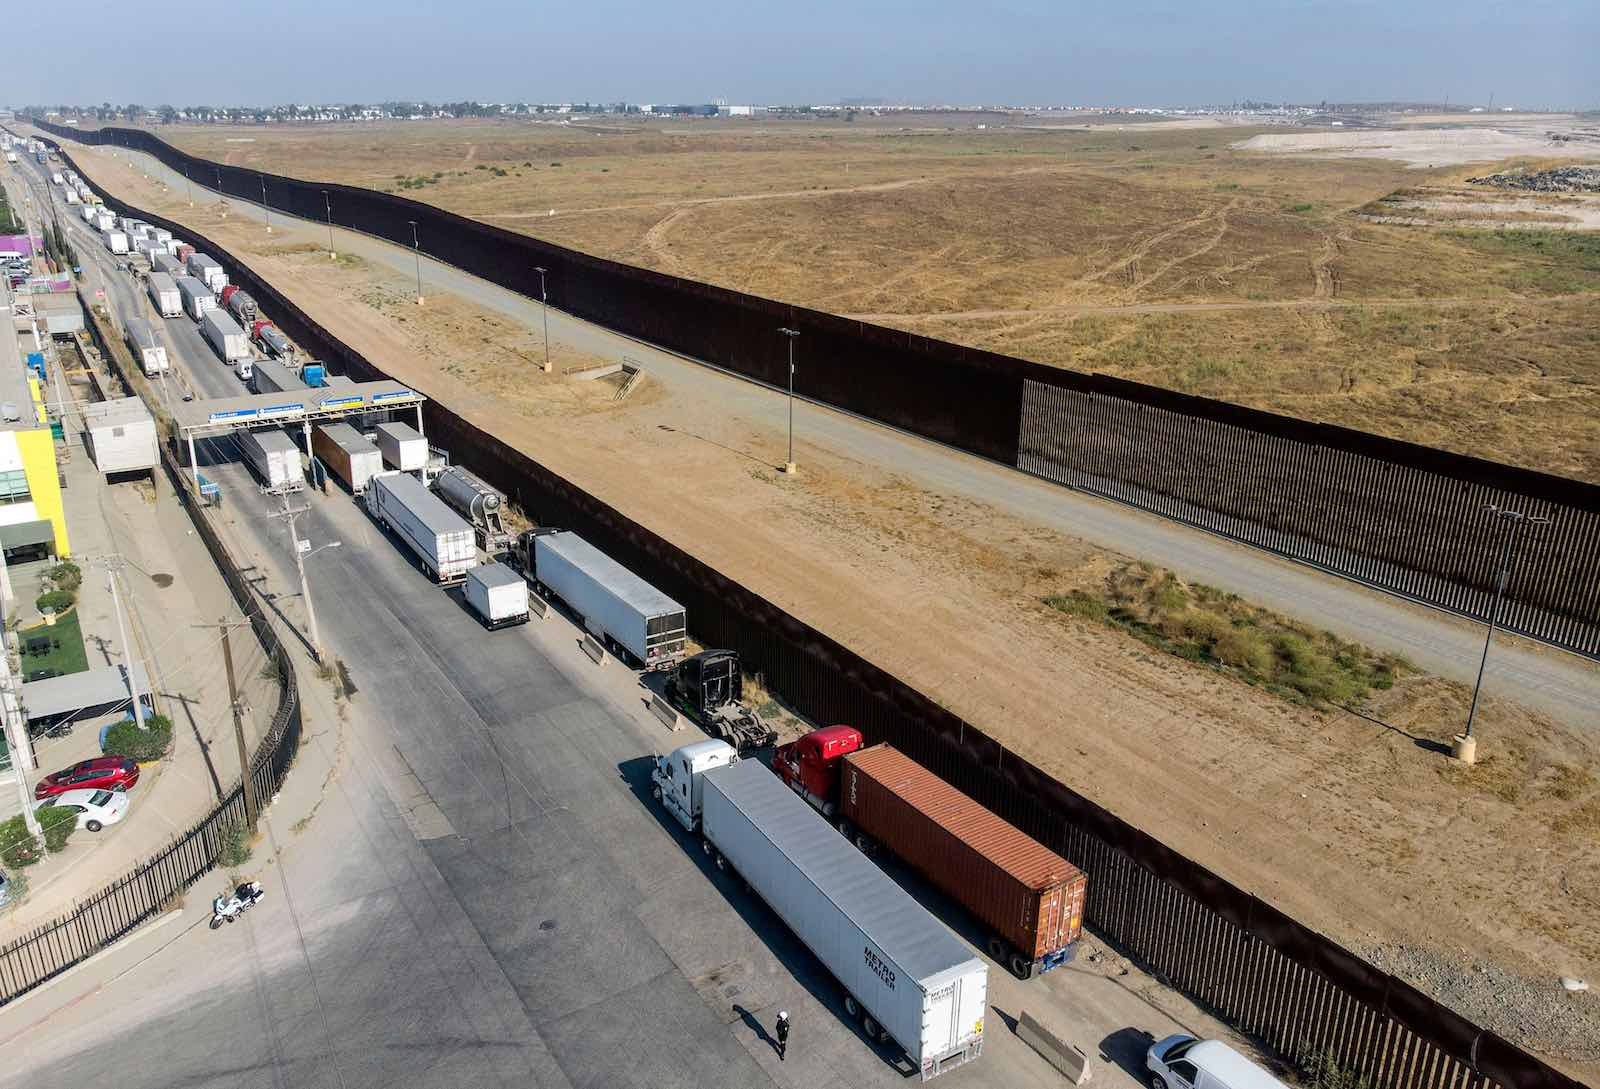 Trucks queue to cross the border into the US at the Otay commercial crossing point in Tijuana, Mexico, 7 July 2020 (Guillermo Arias/AFP via Getty Images)